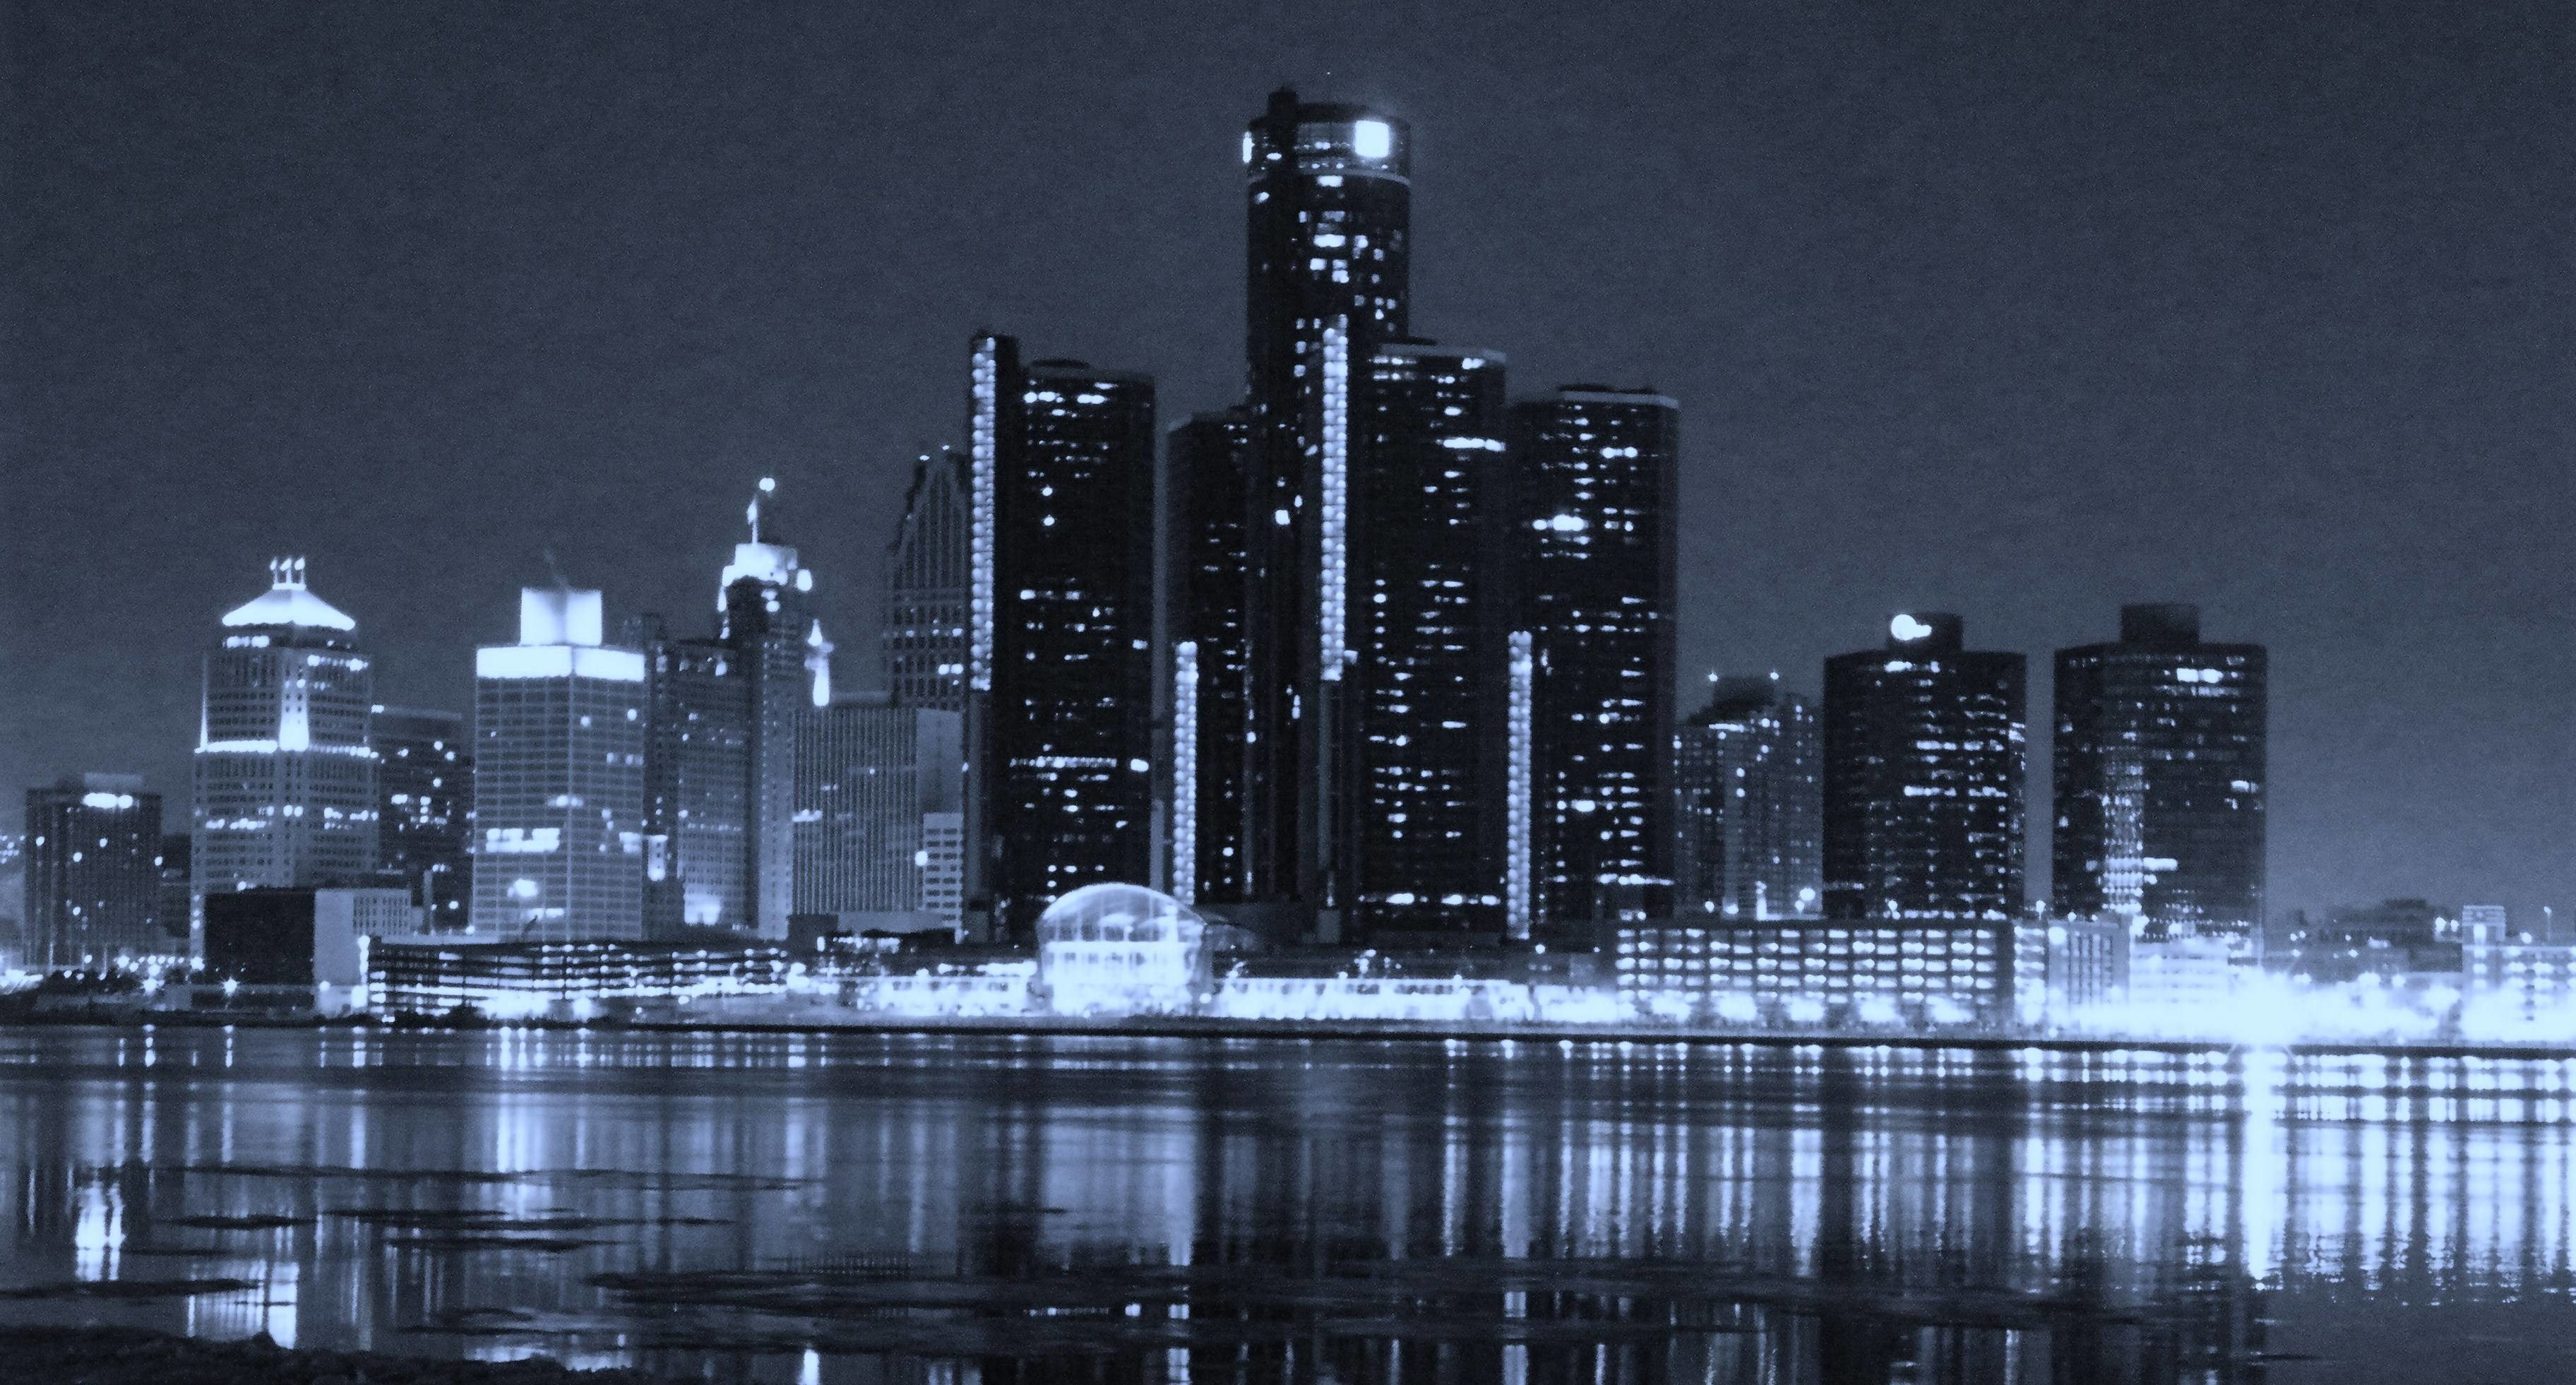 City Skyline 59 382687 High Definition Wallpapers| wallalay.